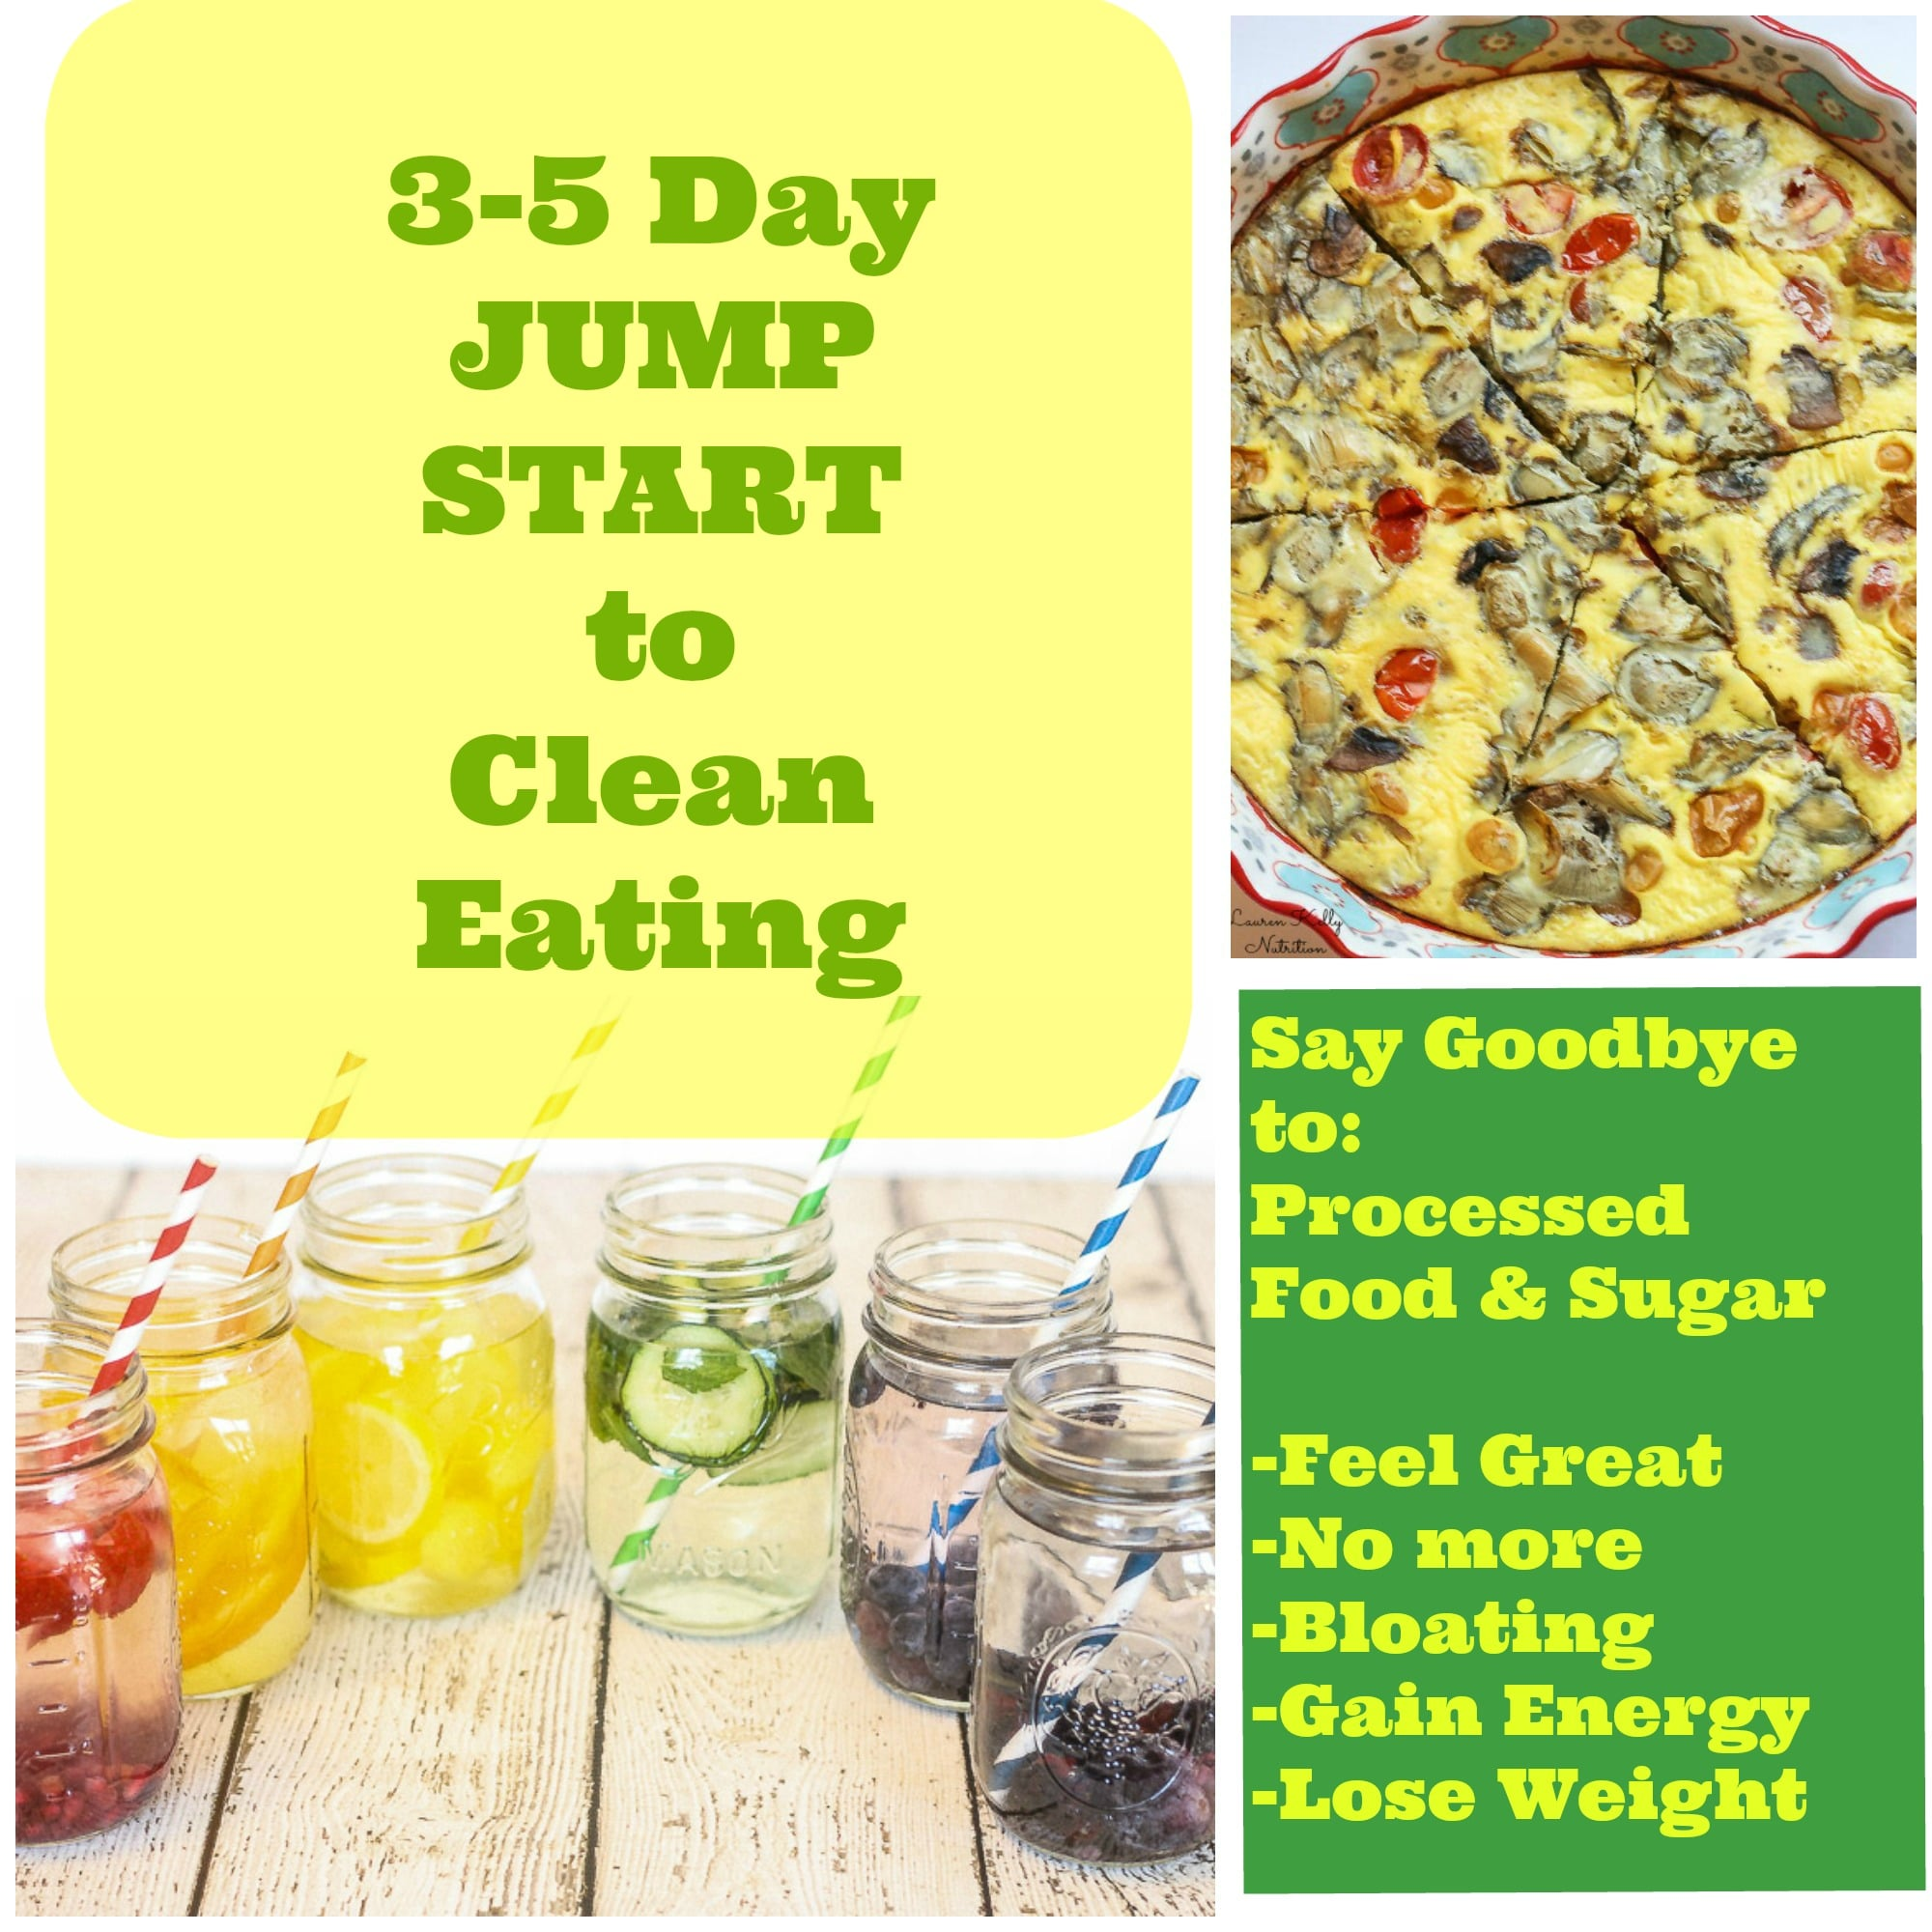 Three five day jump start to clean eating and grocery list 3 5 days to jump start into clean eating its so easy lose forumfinder Gallery